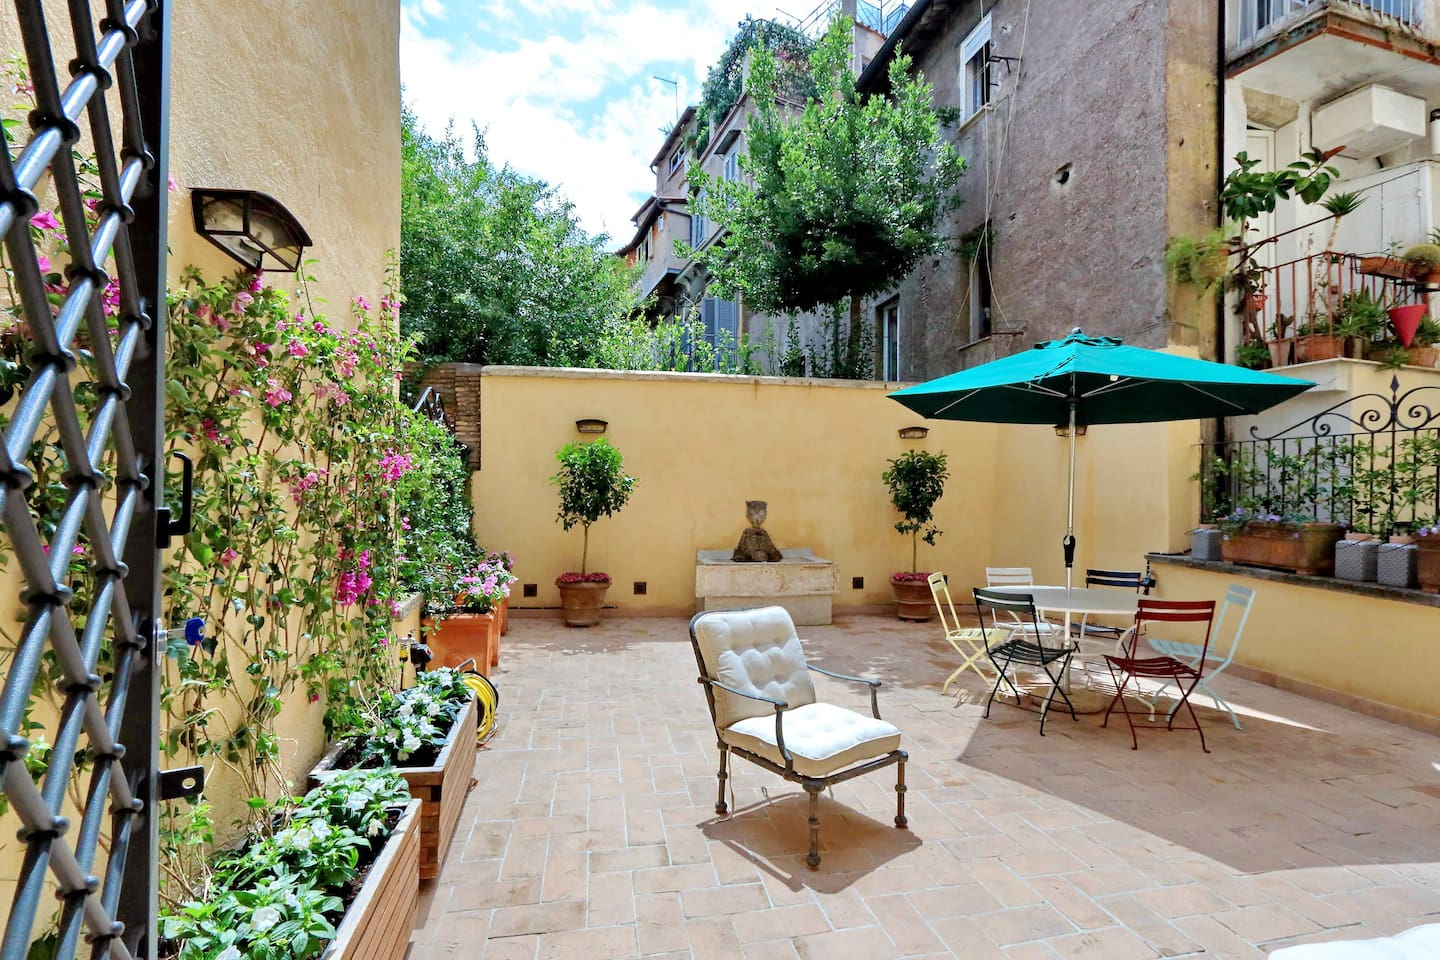 Five bedrooms holiday apartment near Piazza Venezia and Campo de Fiori - Terrace